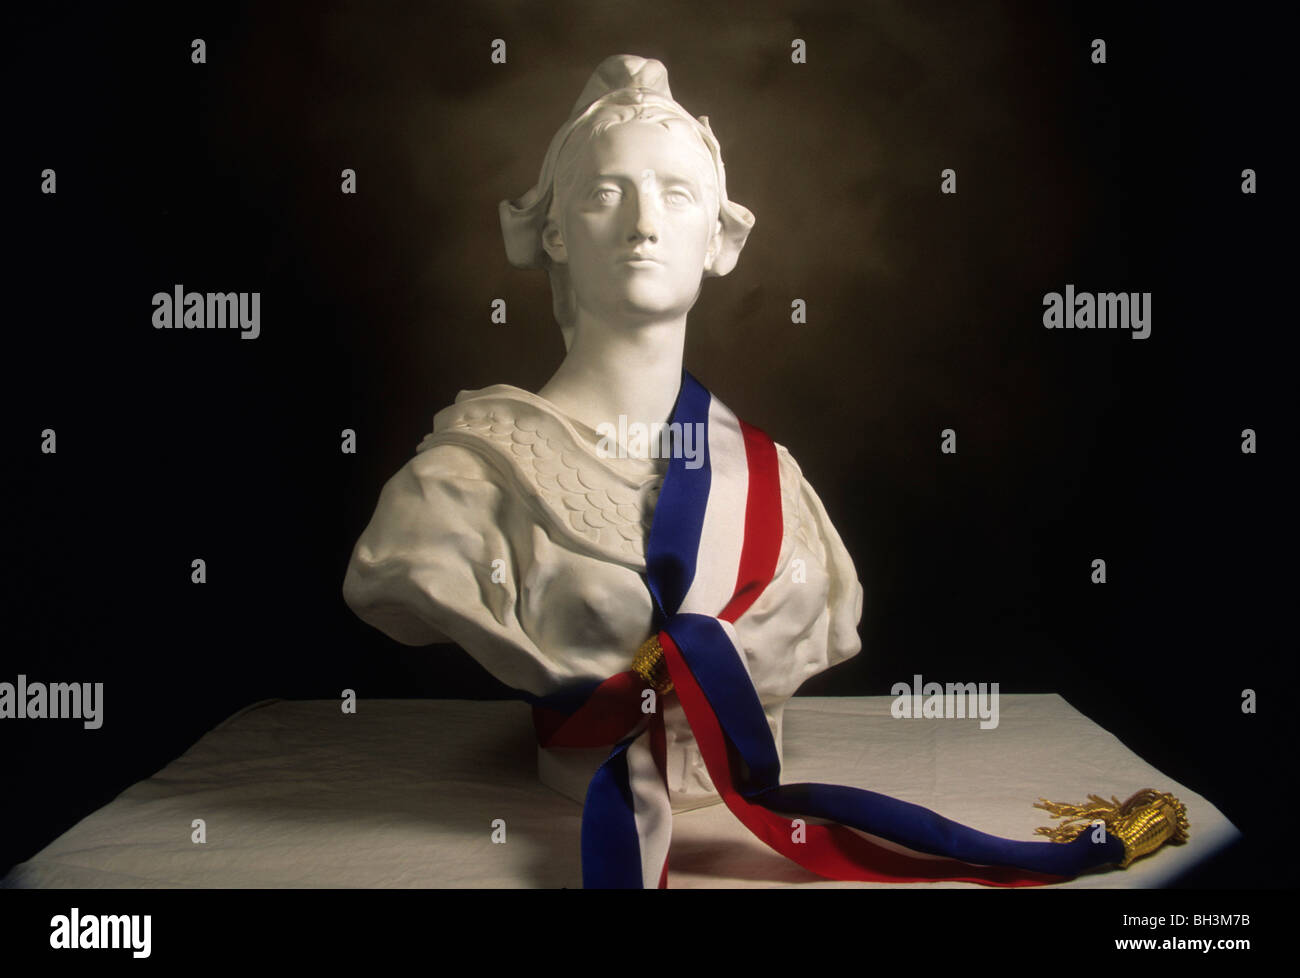 Statue of Marianne, national symbol of the French Republic - Stock Image